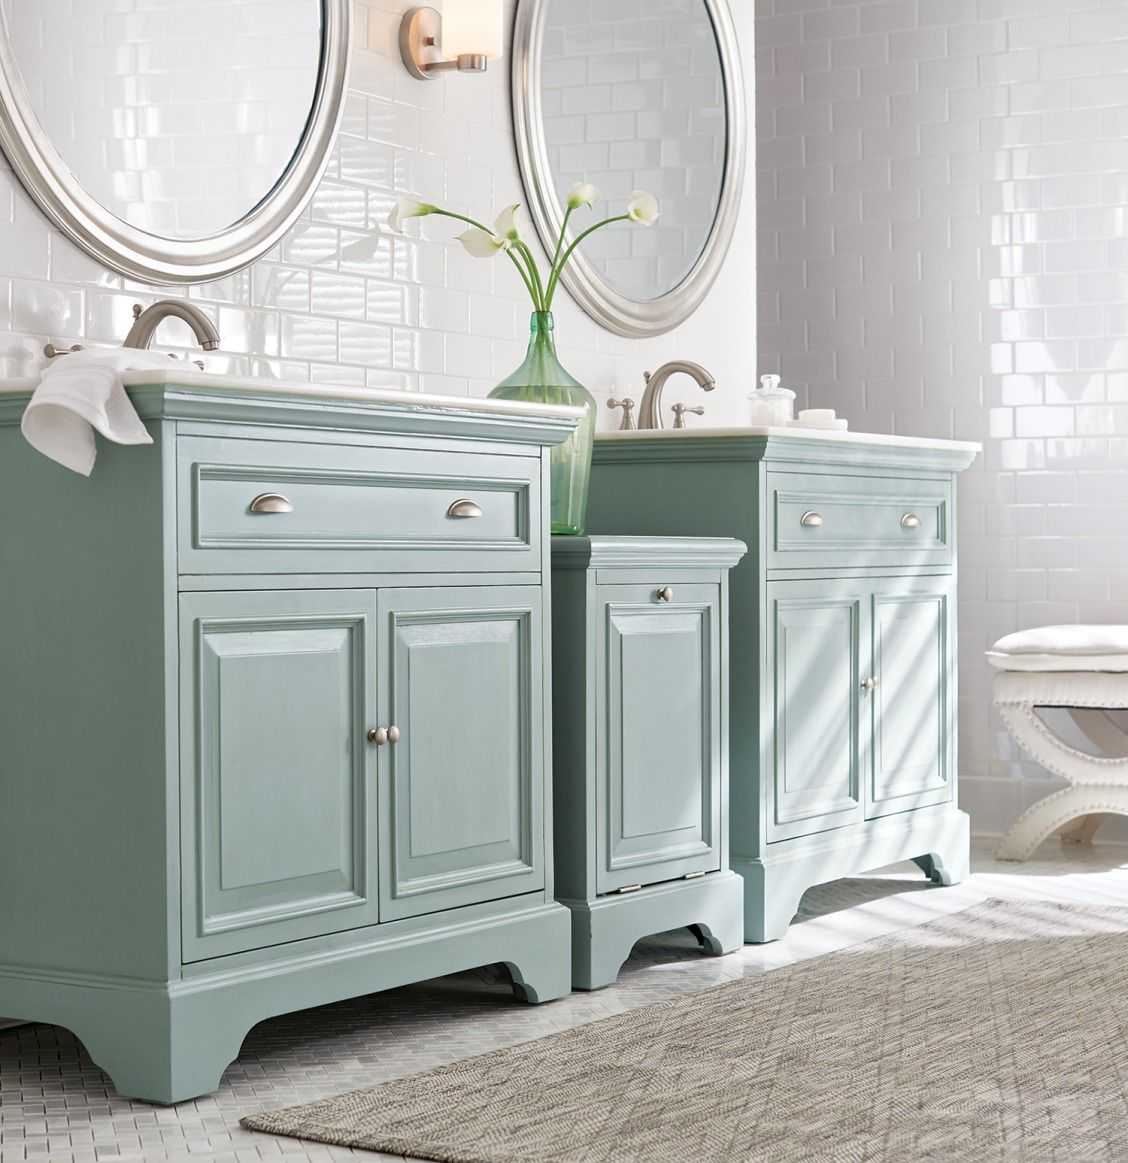 For An Unexpected Style Try Two Single Vanities Instead Of One Double Vanity In Your Master Bath Our Sa Collection Features A Beautiful